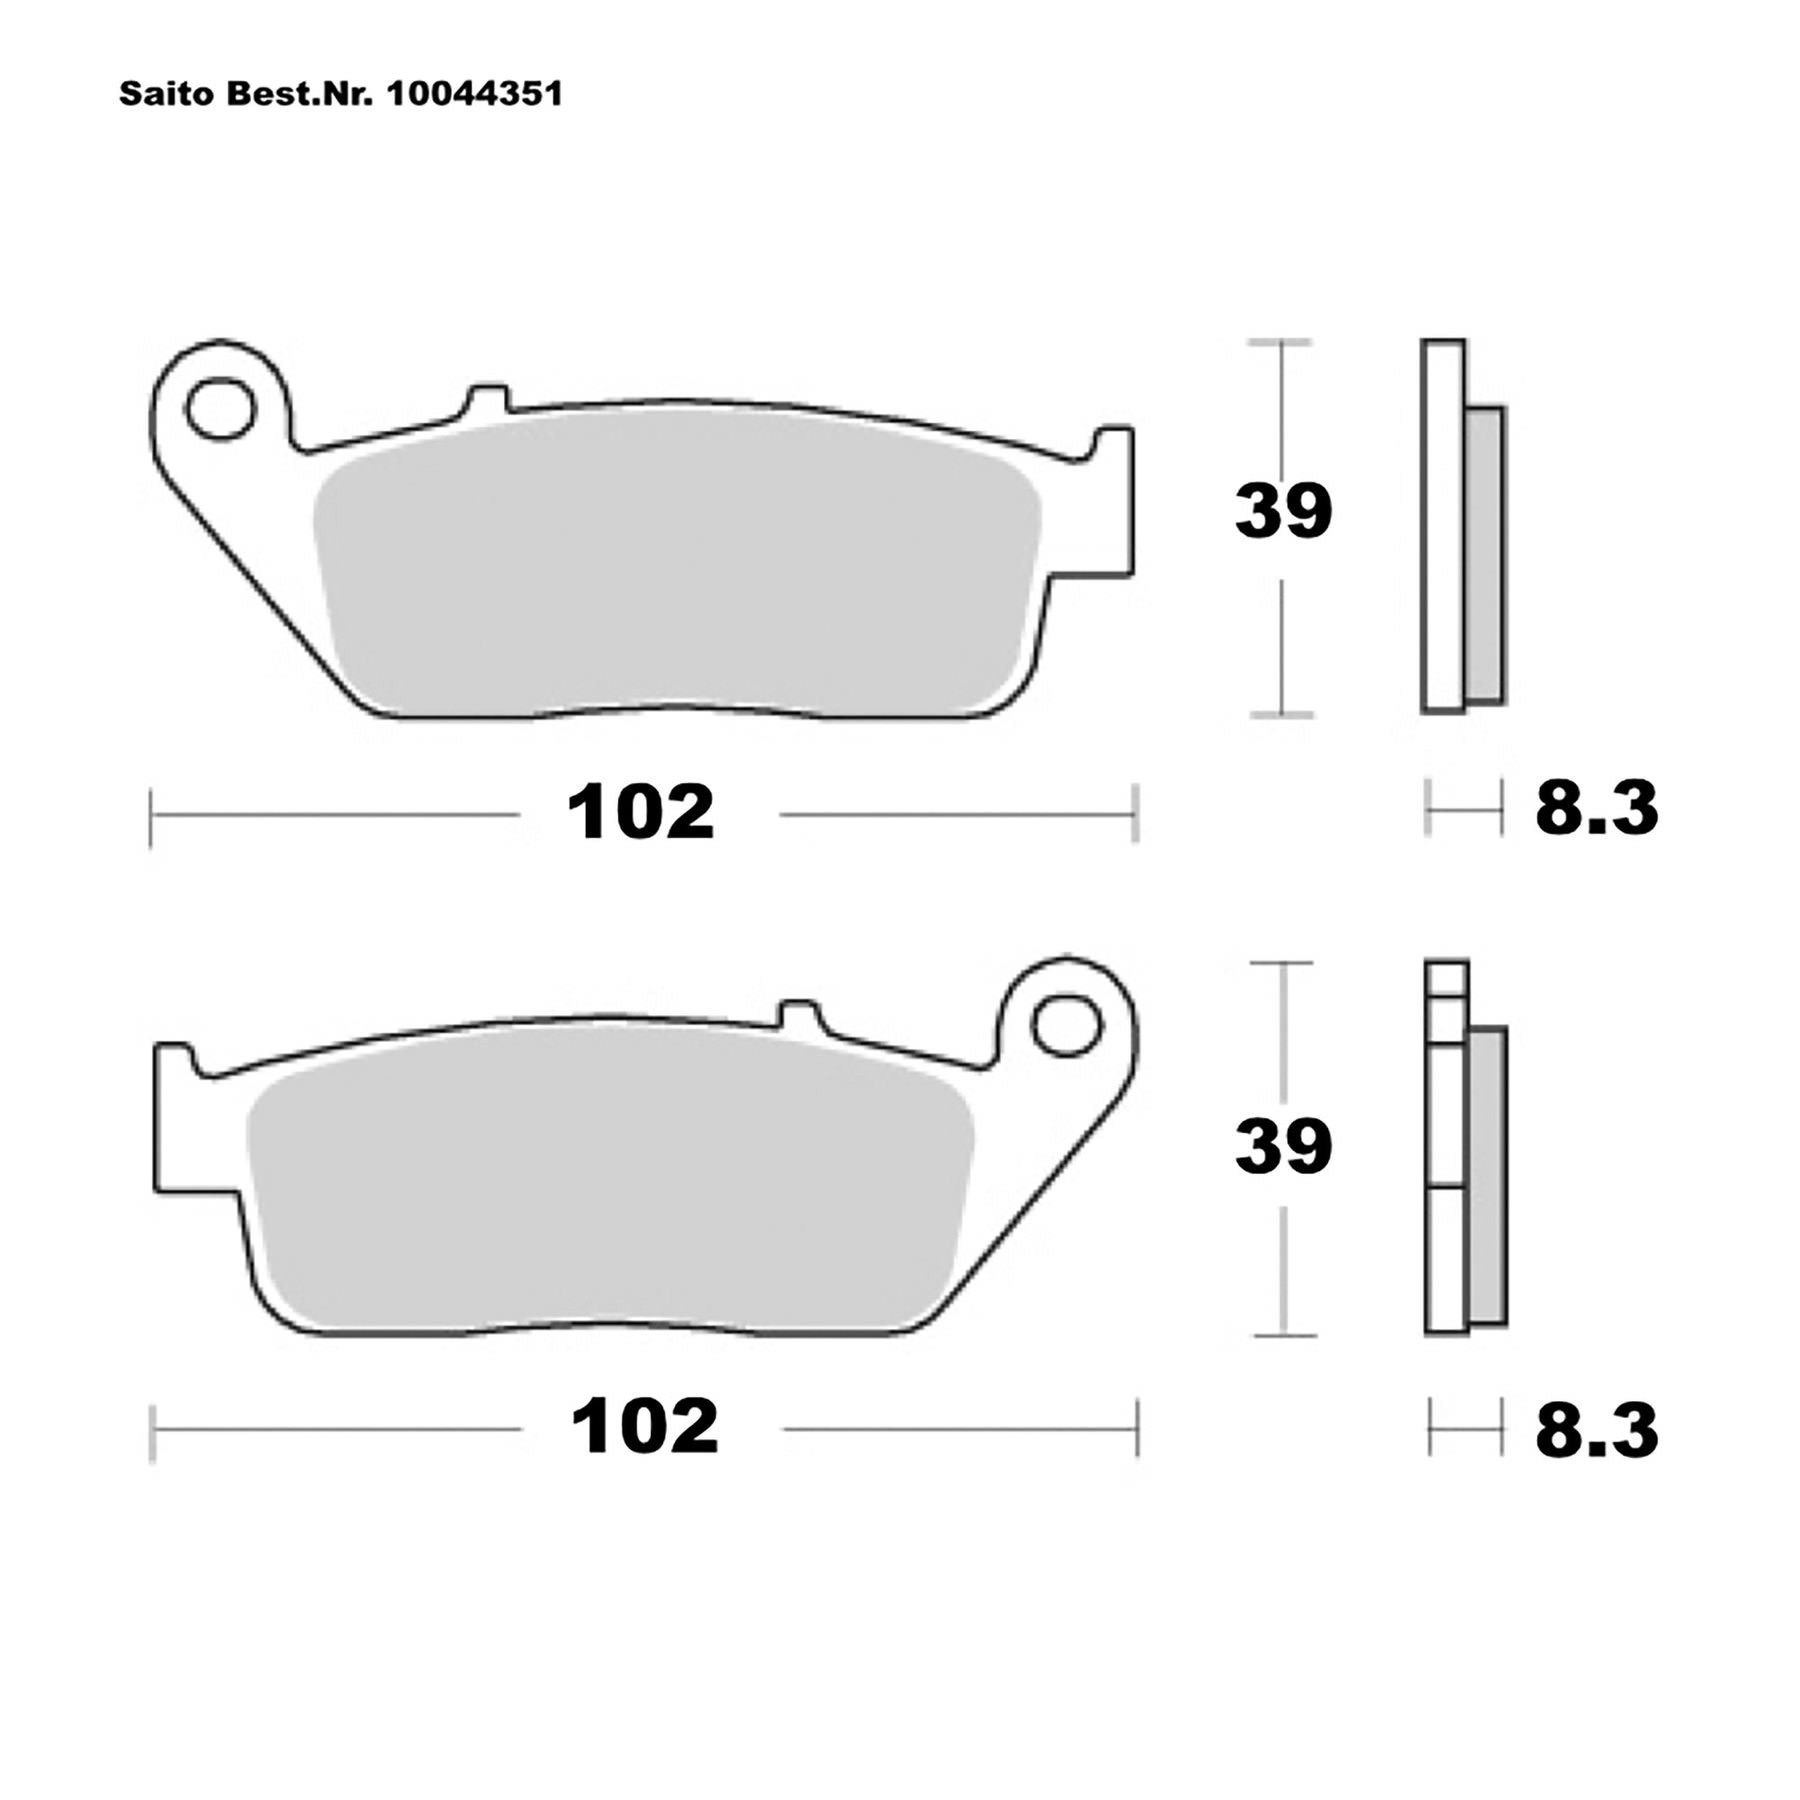 Buy Saito Brake Pads Sinter Honda Triumph Different Louis Motorcycle Clothing And Technology